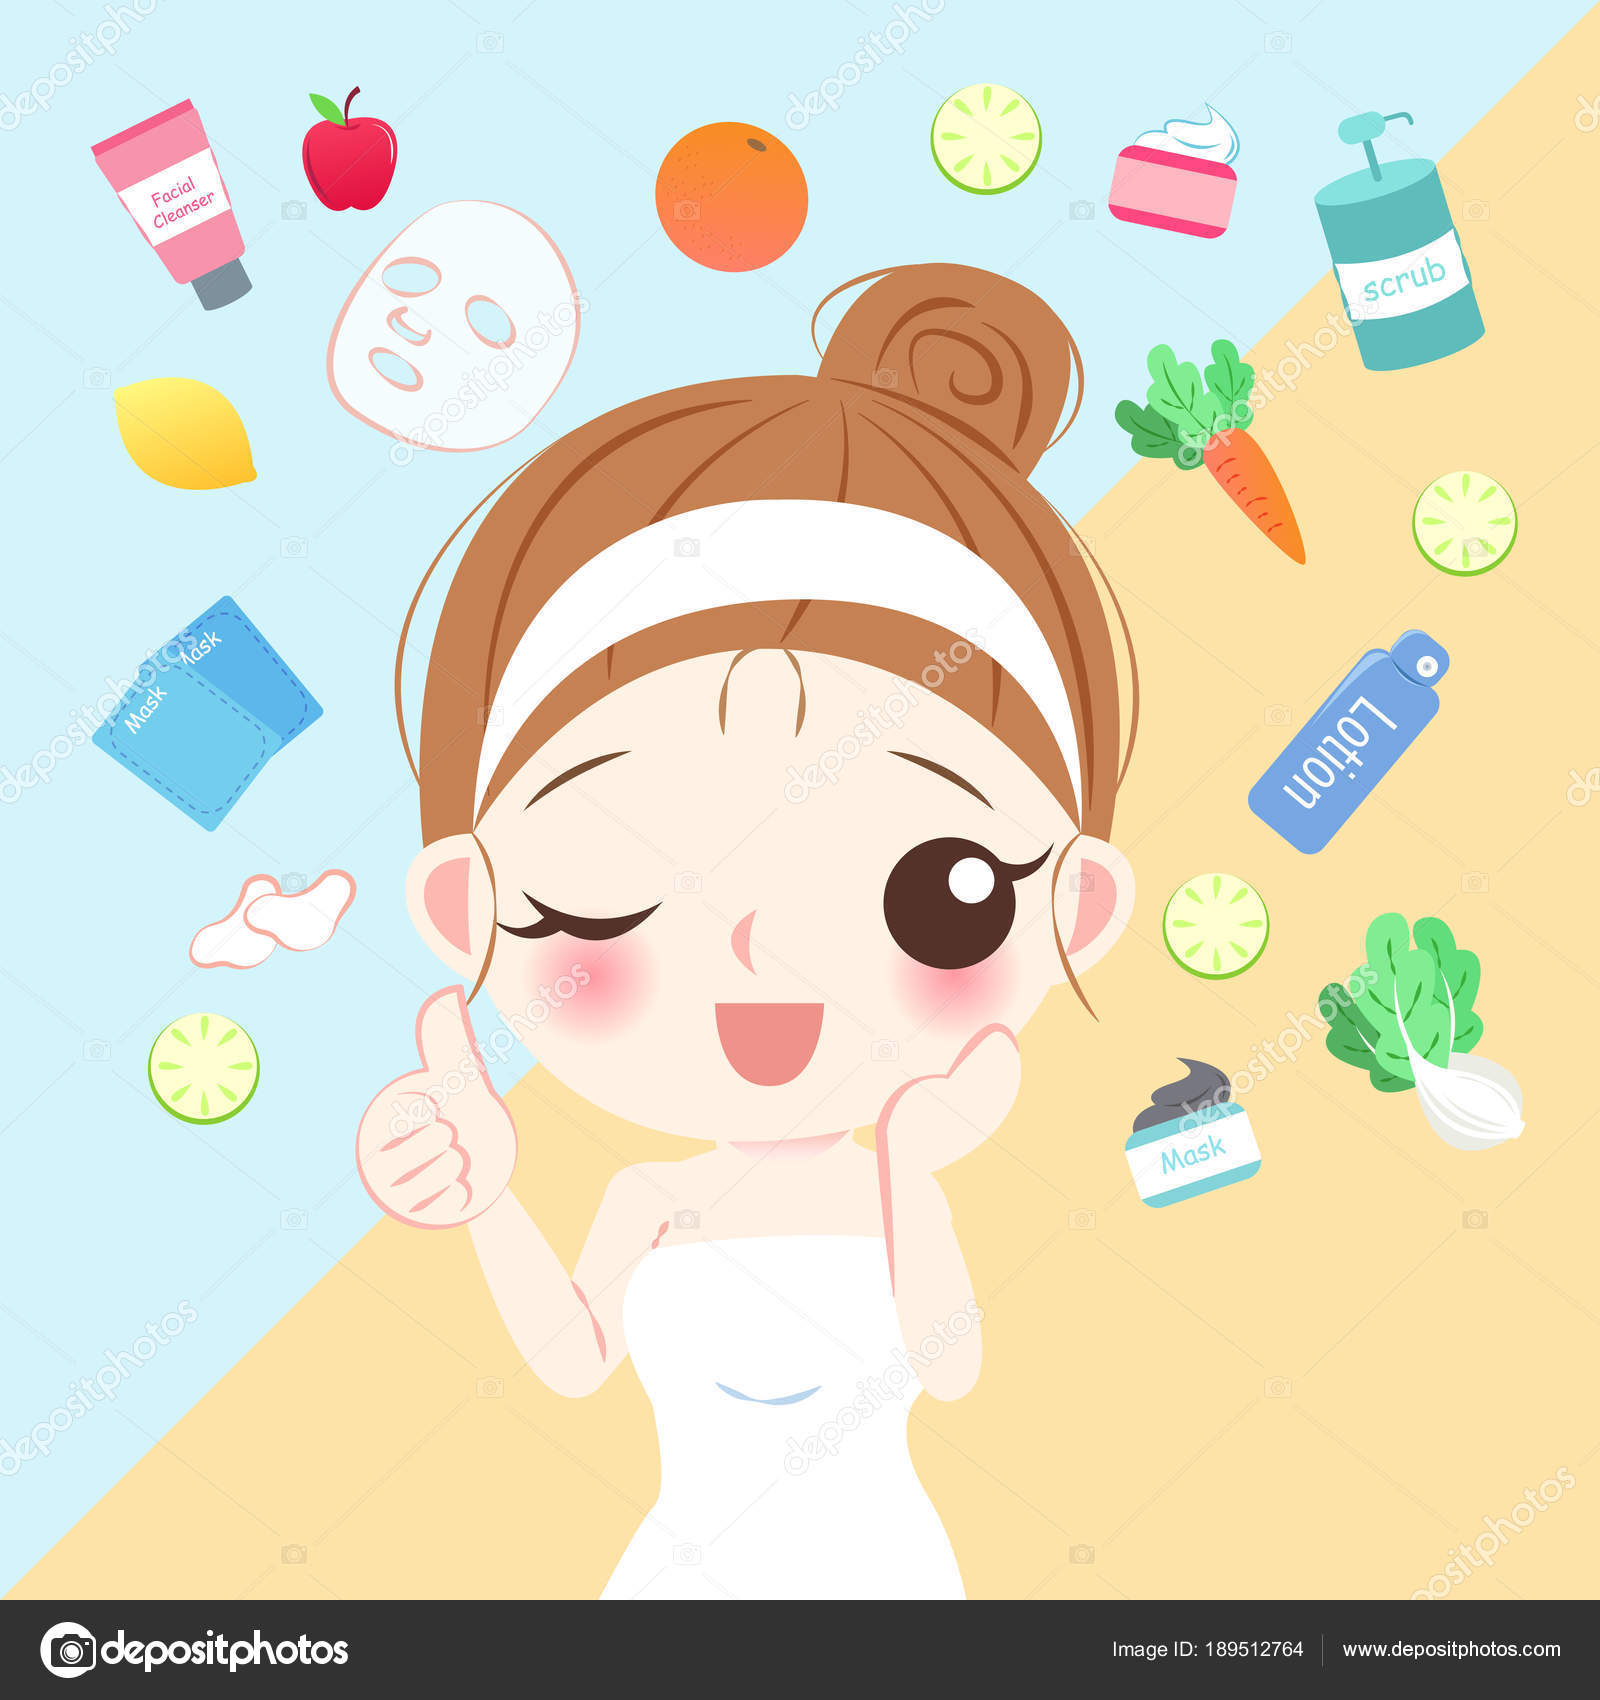 Pictures Beauty Cartoon Beauty Cartoon Skin Care Woman Stock Vector C Estherqueen999 189512764